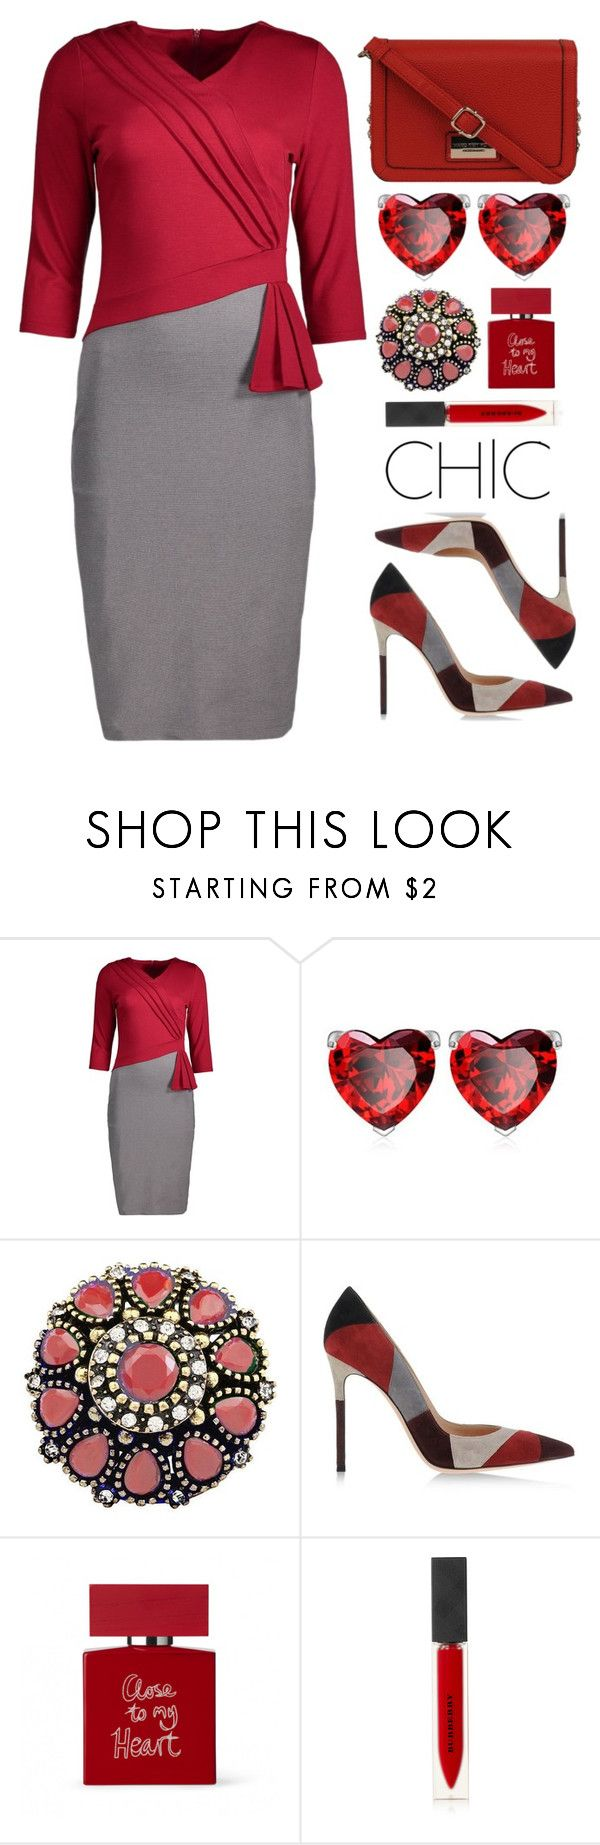 """Formal Style"" by simona-altobelli ❤ liked on Polyvore featuring Gianvito Rossi, Bella Freud, Burberry, Andrew Marc, dress, formal, MyStyle, redandgray and twotonedress"